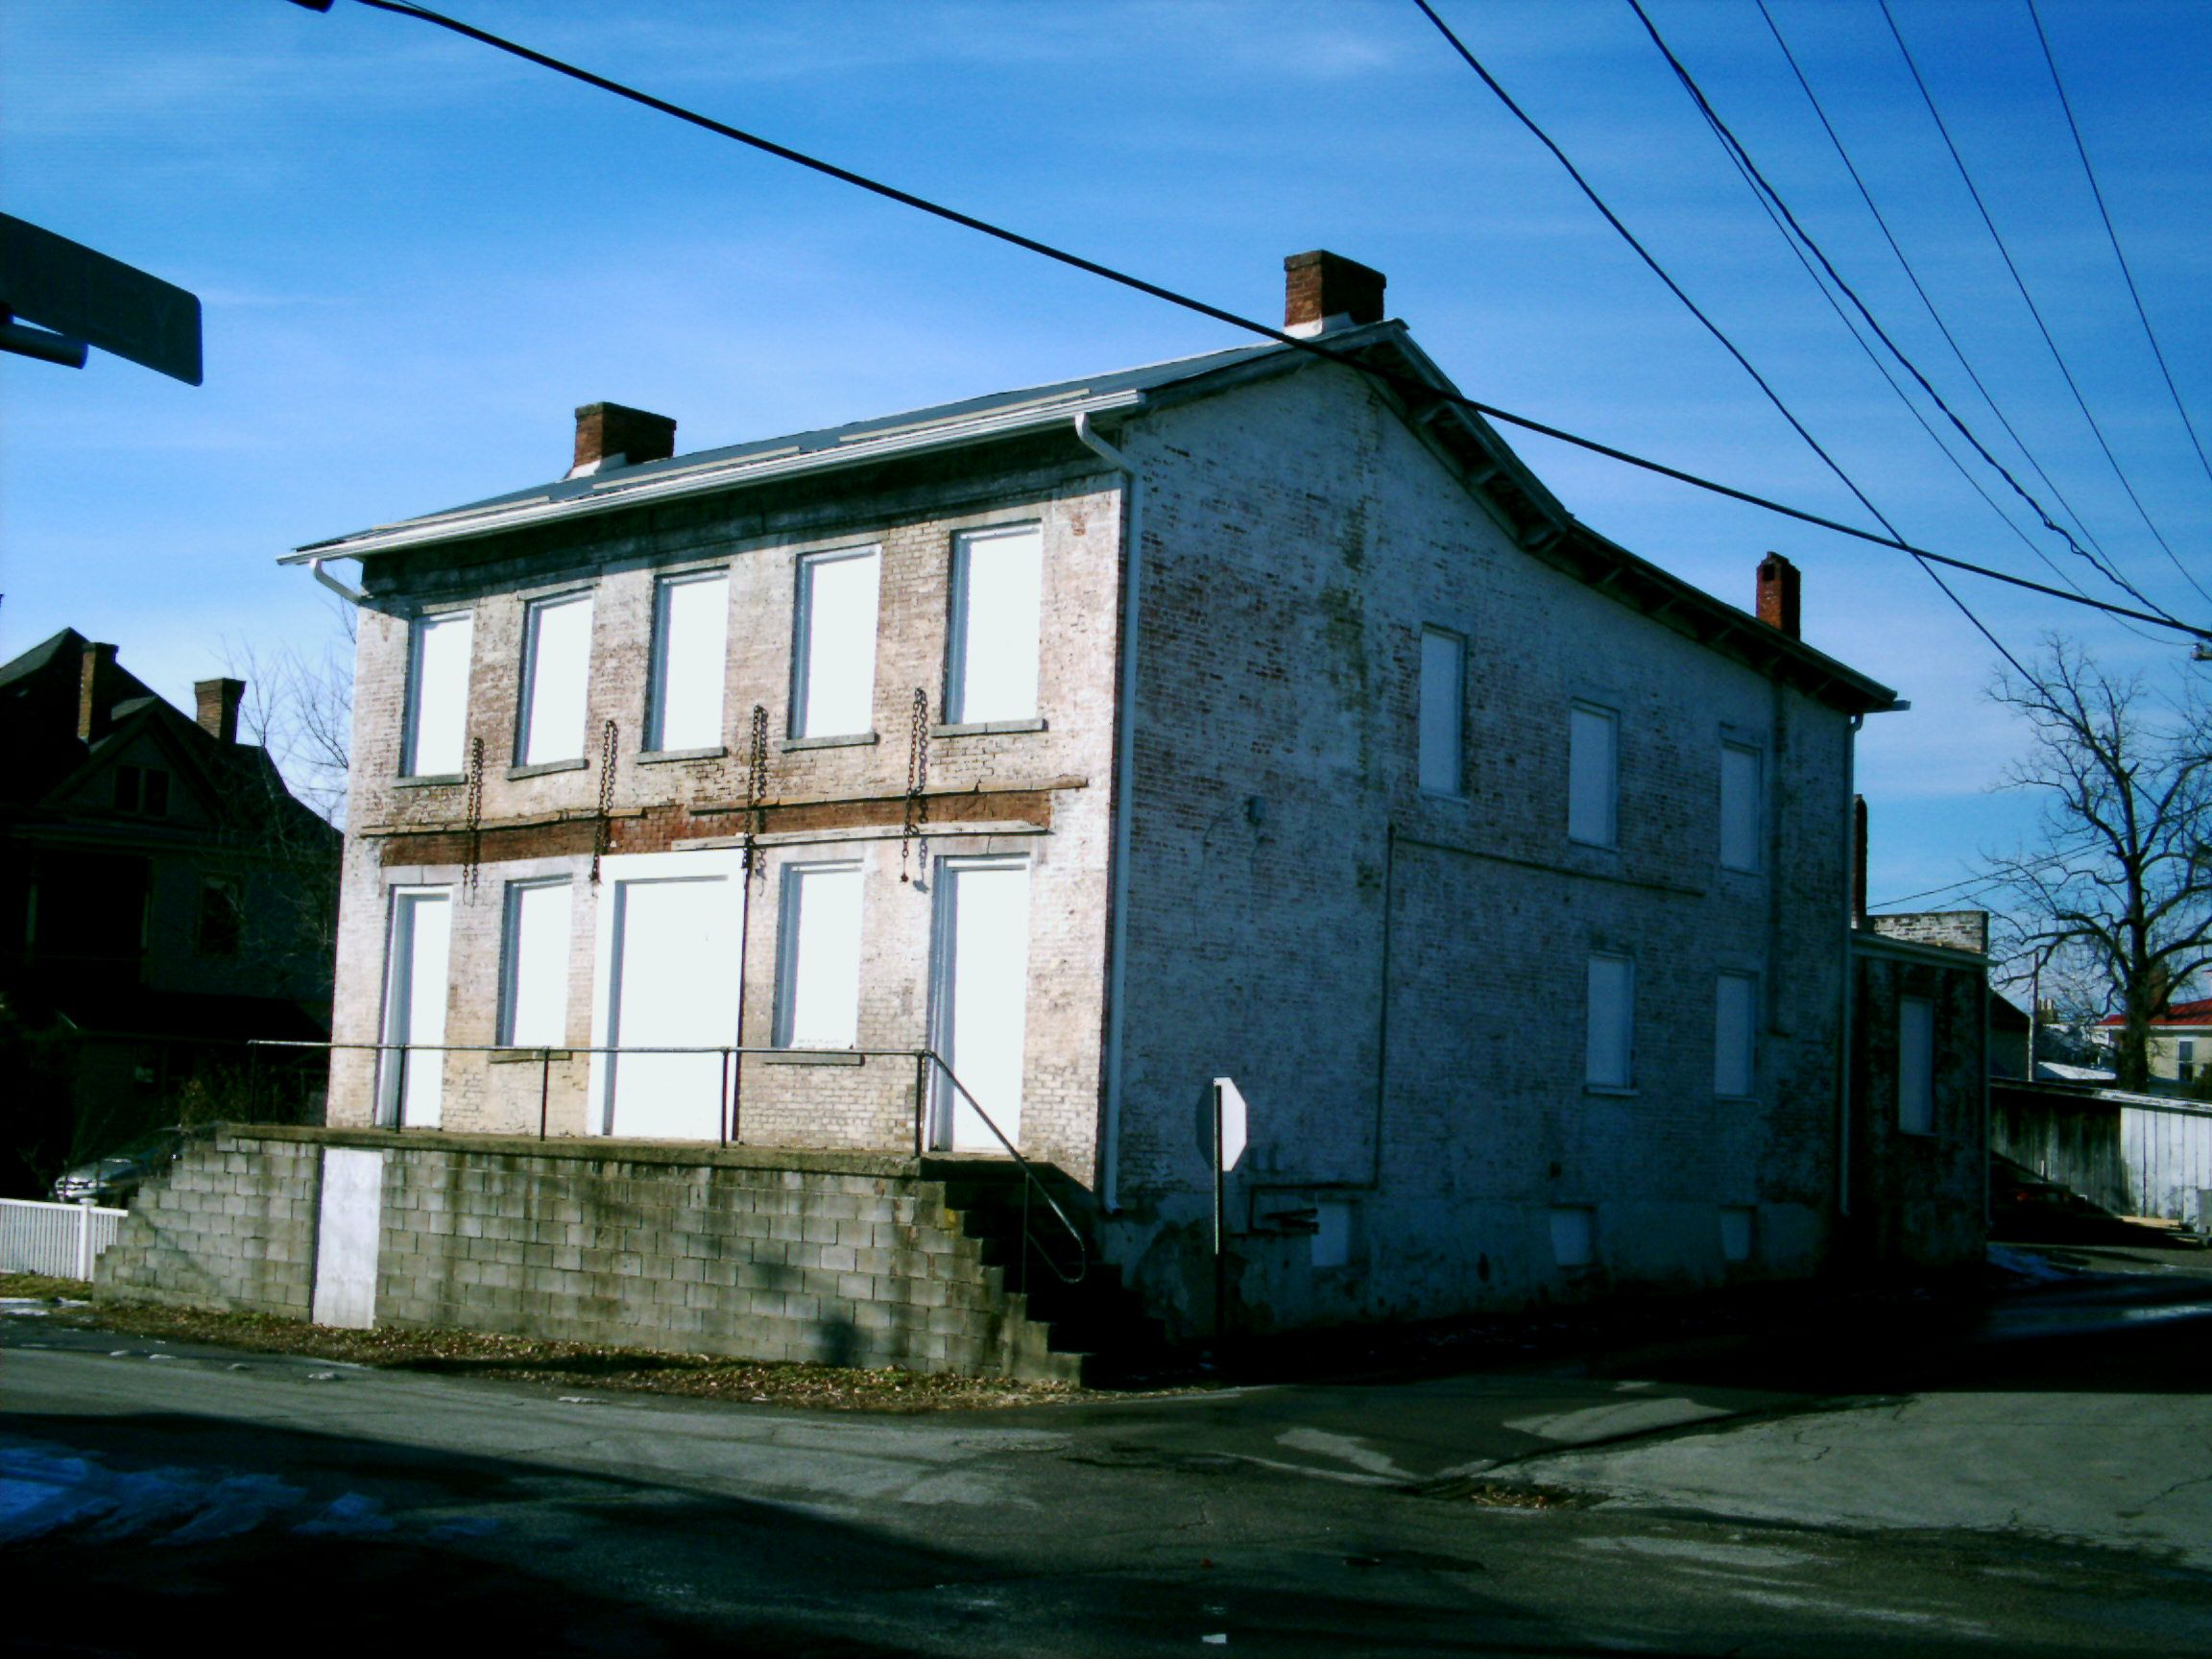 Ripley Oh Brown County An Abandoned House On Market St